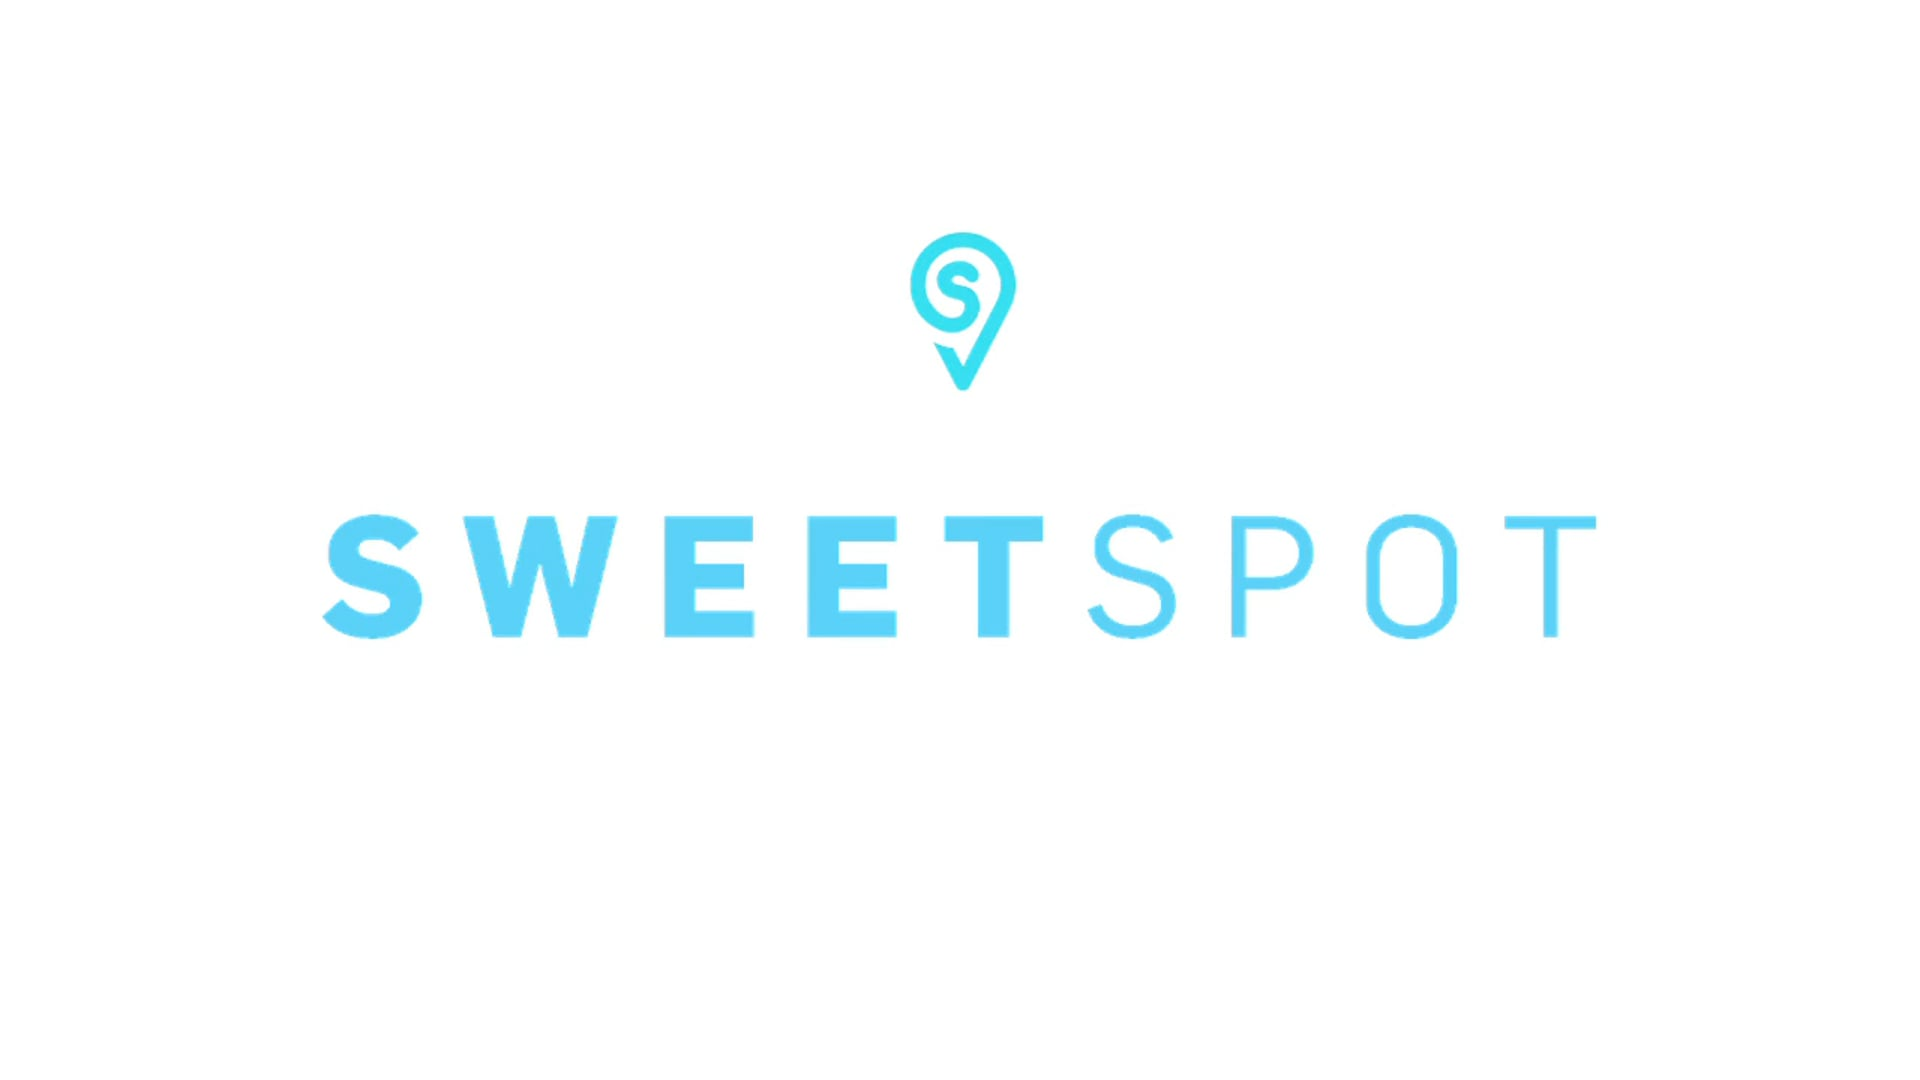 Commercial - SweetSpot